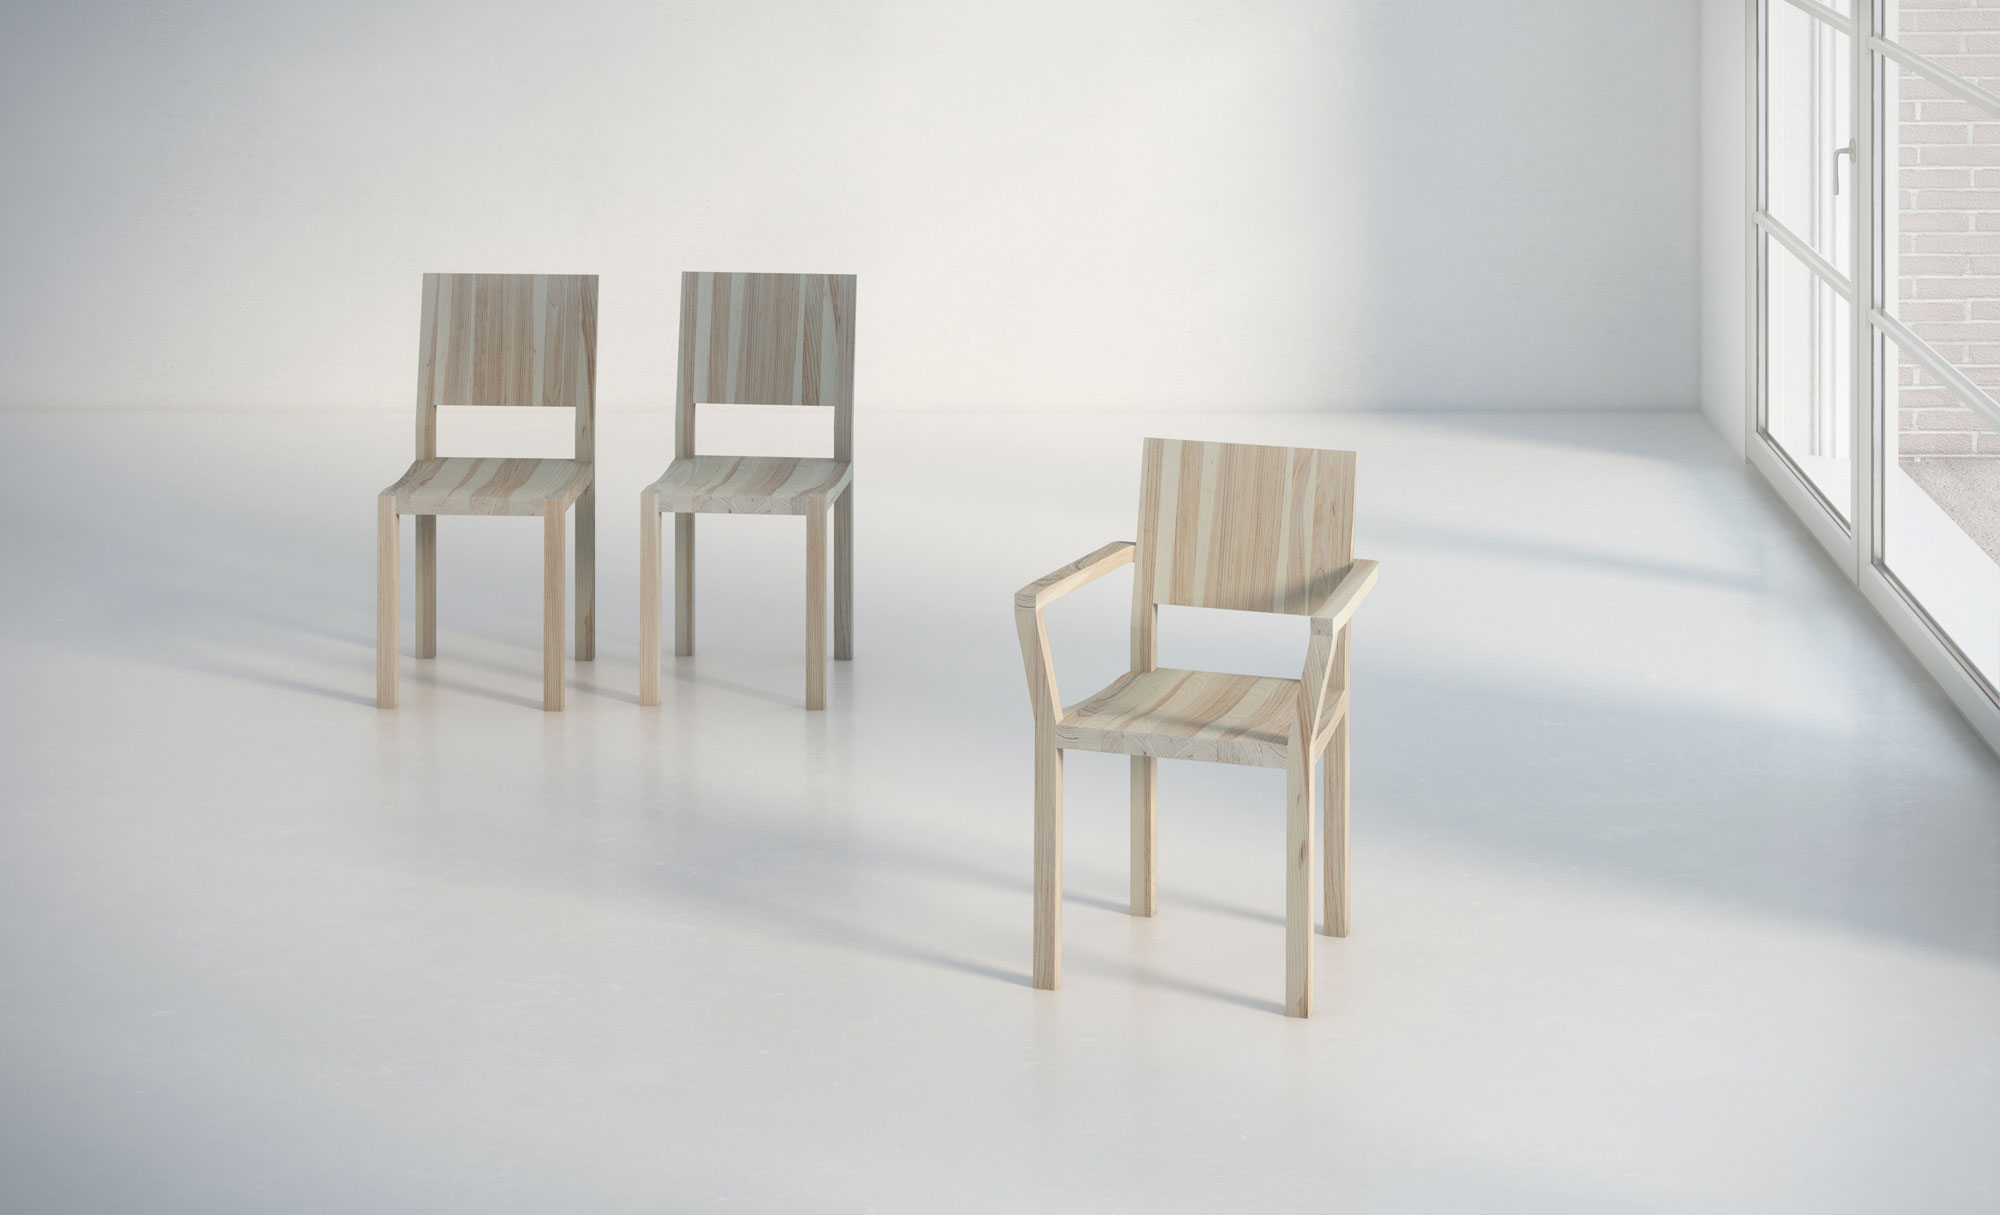 Solid Wood Chair TAU studio custom made in solid wood by vitamin design